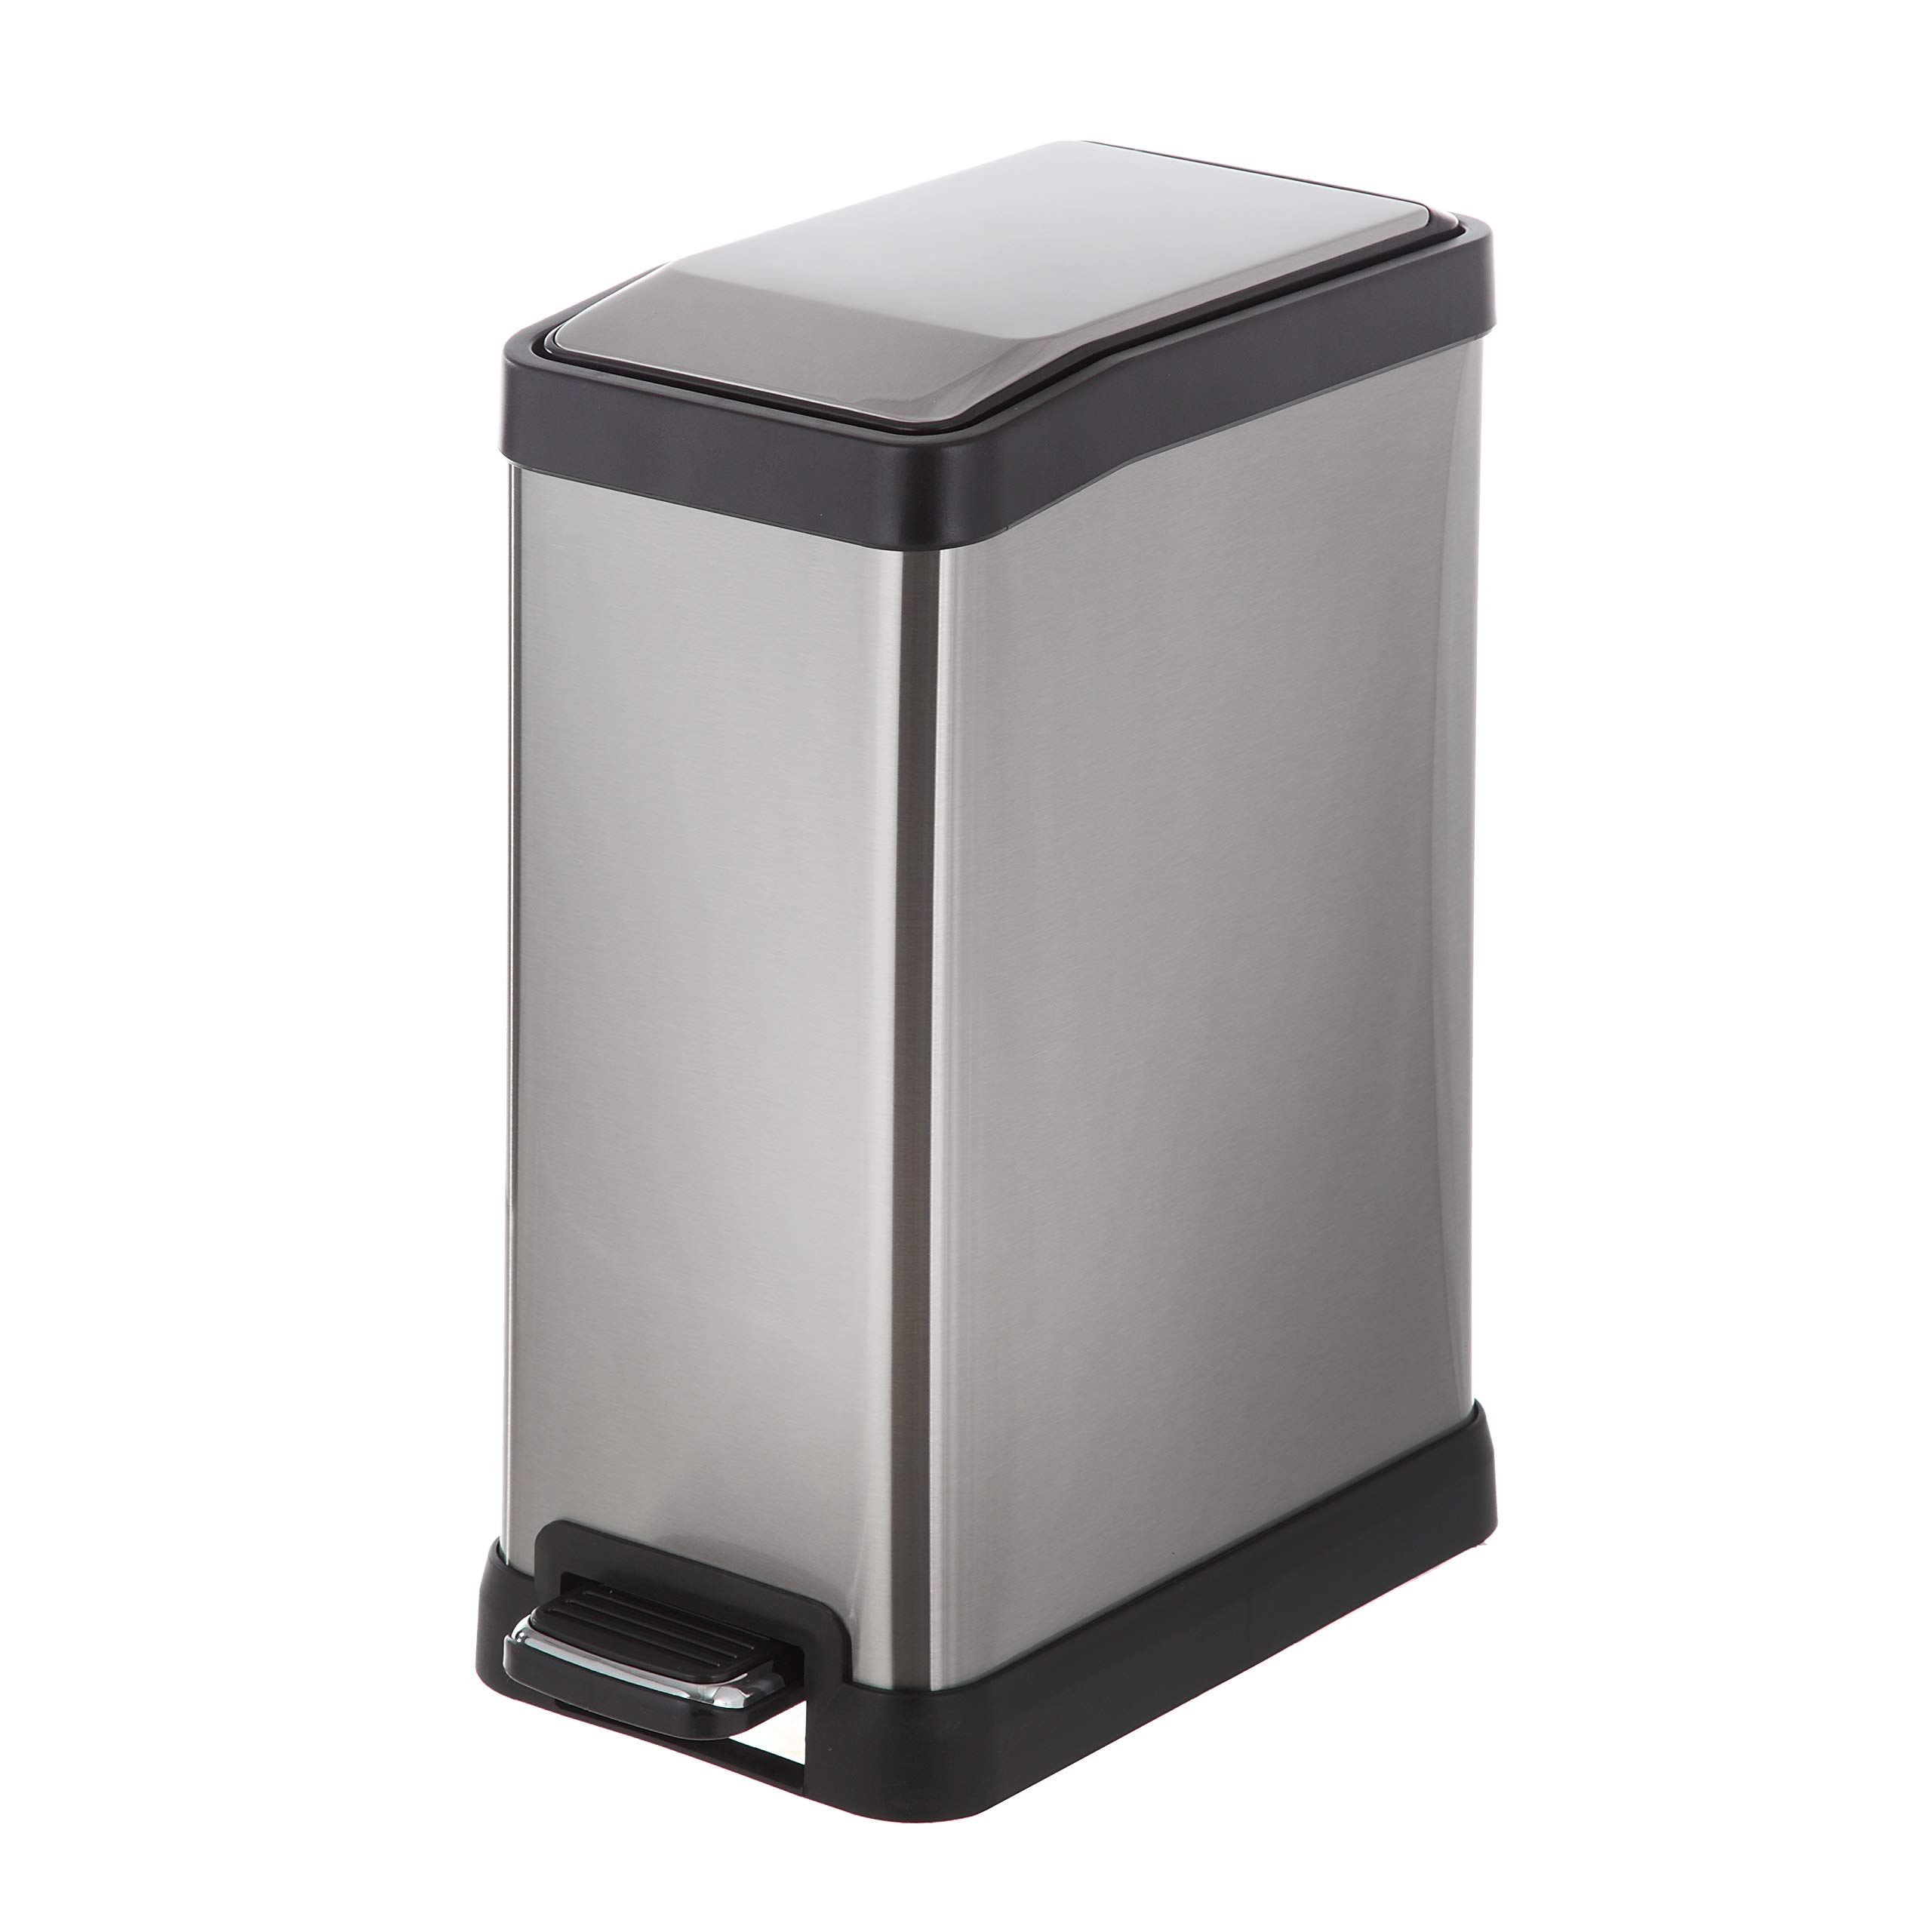 Home Zone Rectangular Step Trash Can - 2 Gallon /8 Liter Stainless Steel Trash Can Bin, Silver (VA41312A)